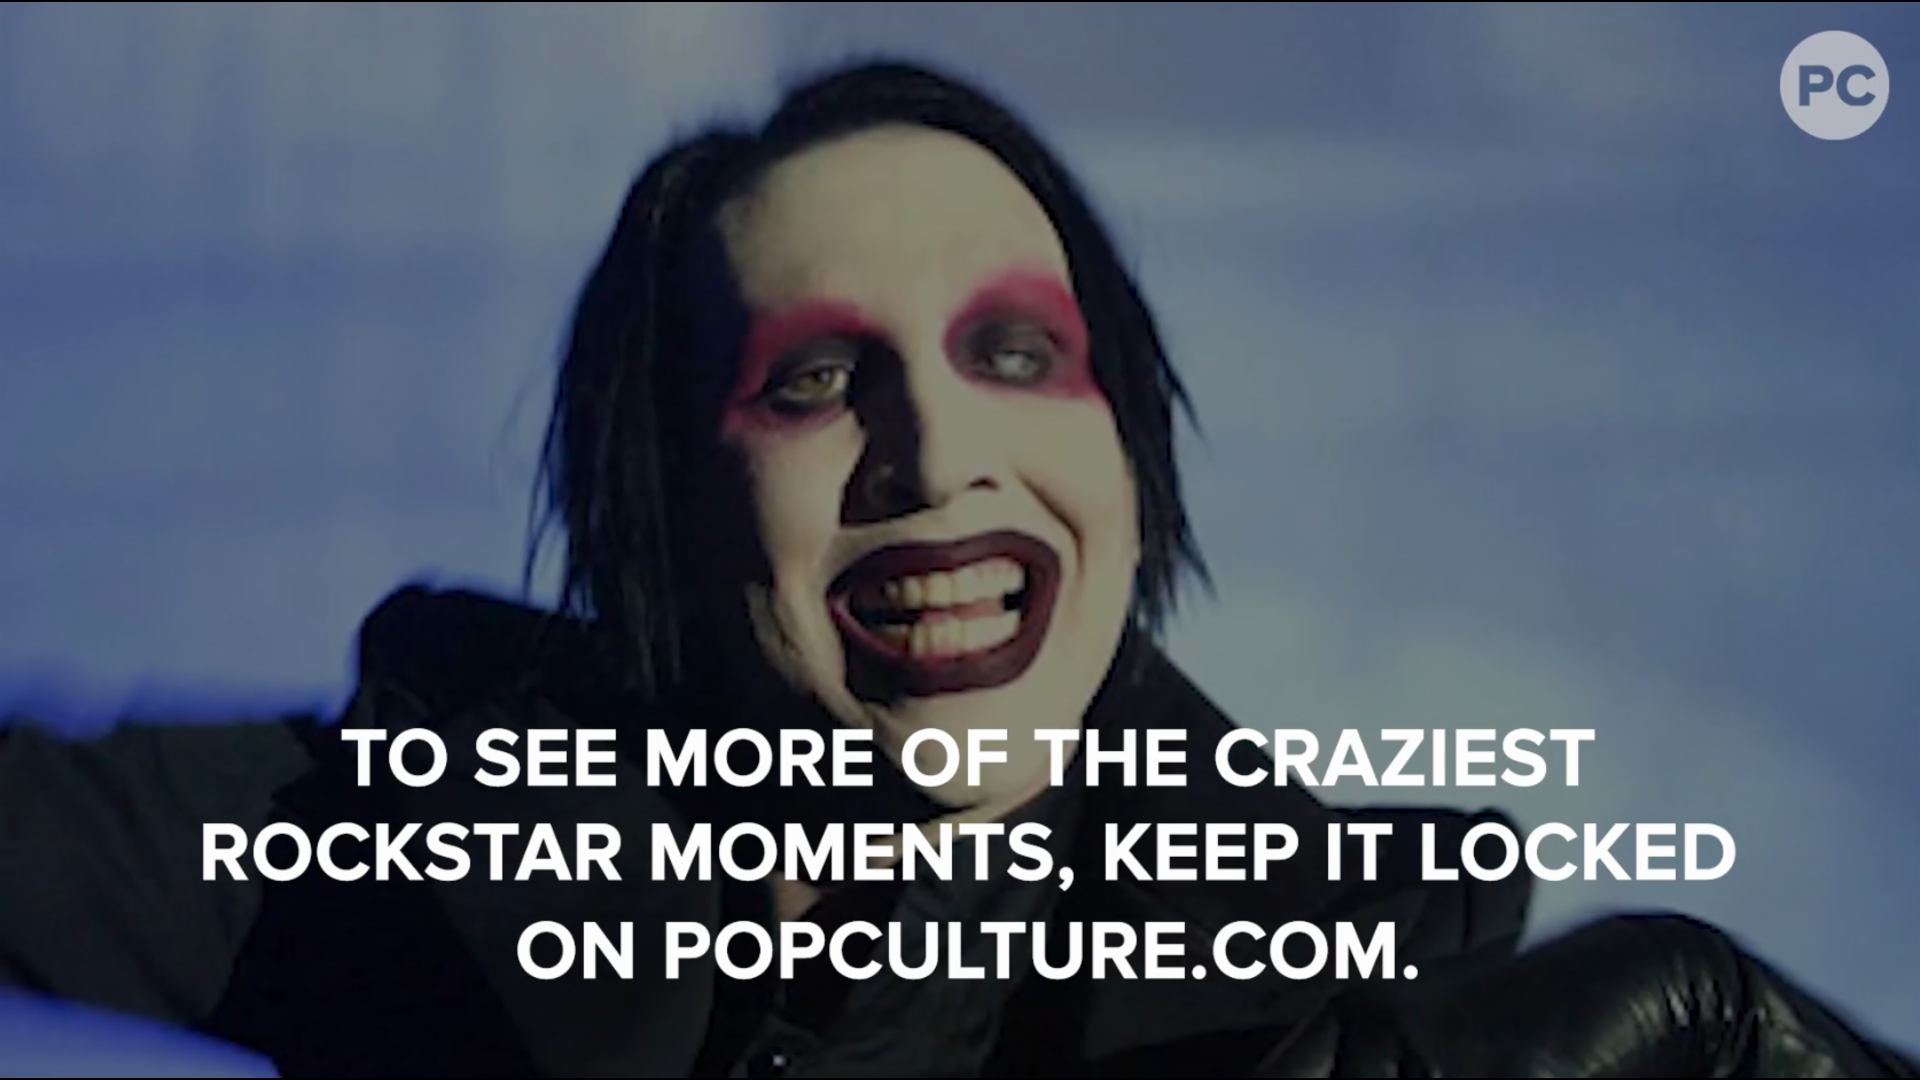 Craziest Rockstar Moments (Viewer Discretion Advised) screen capture